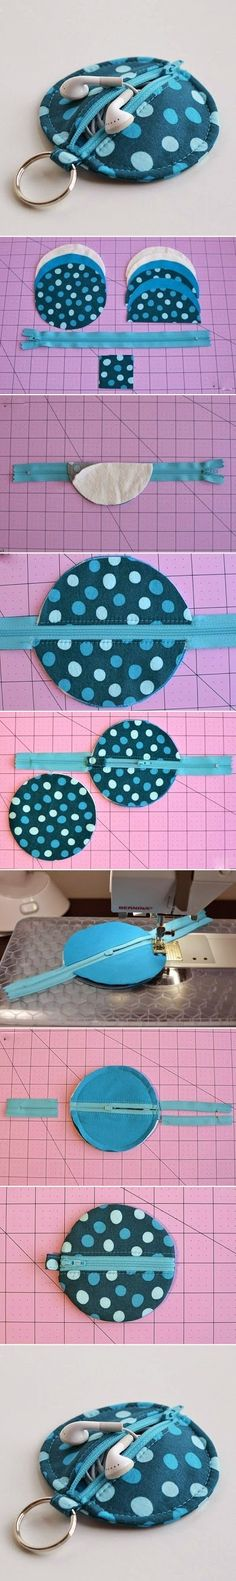 DIY Blue Polka Dot Earphone Case tutorial from Erin Erickson's blog: www.dogundermydesk.com/2011/11/circle-zip-earbud-pouch-tutorial/